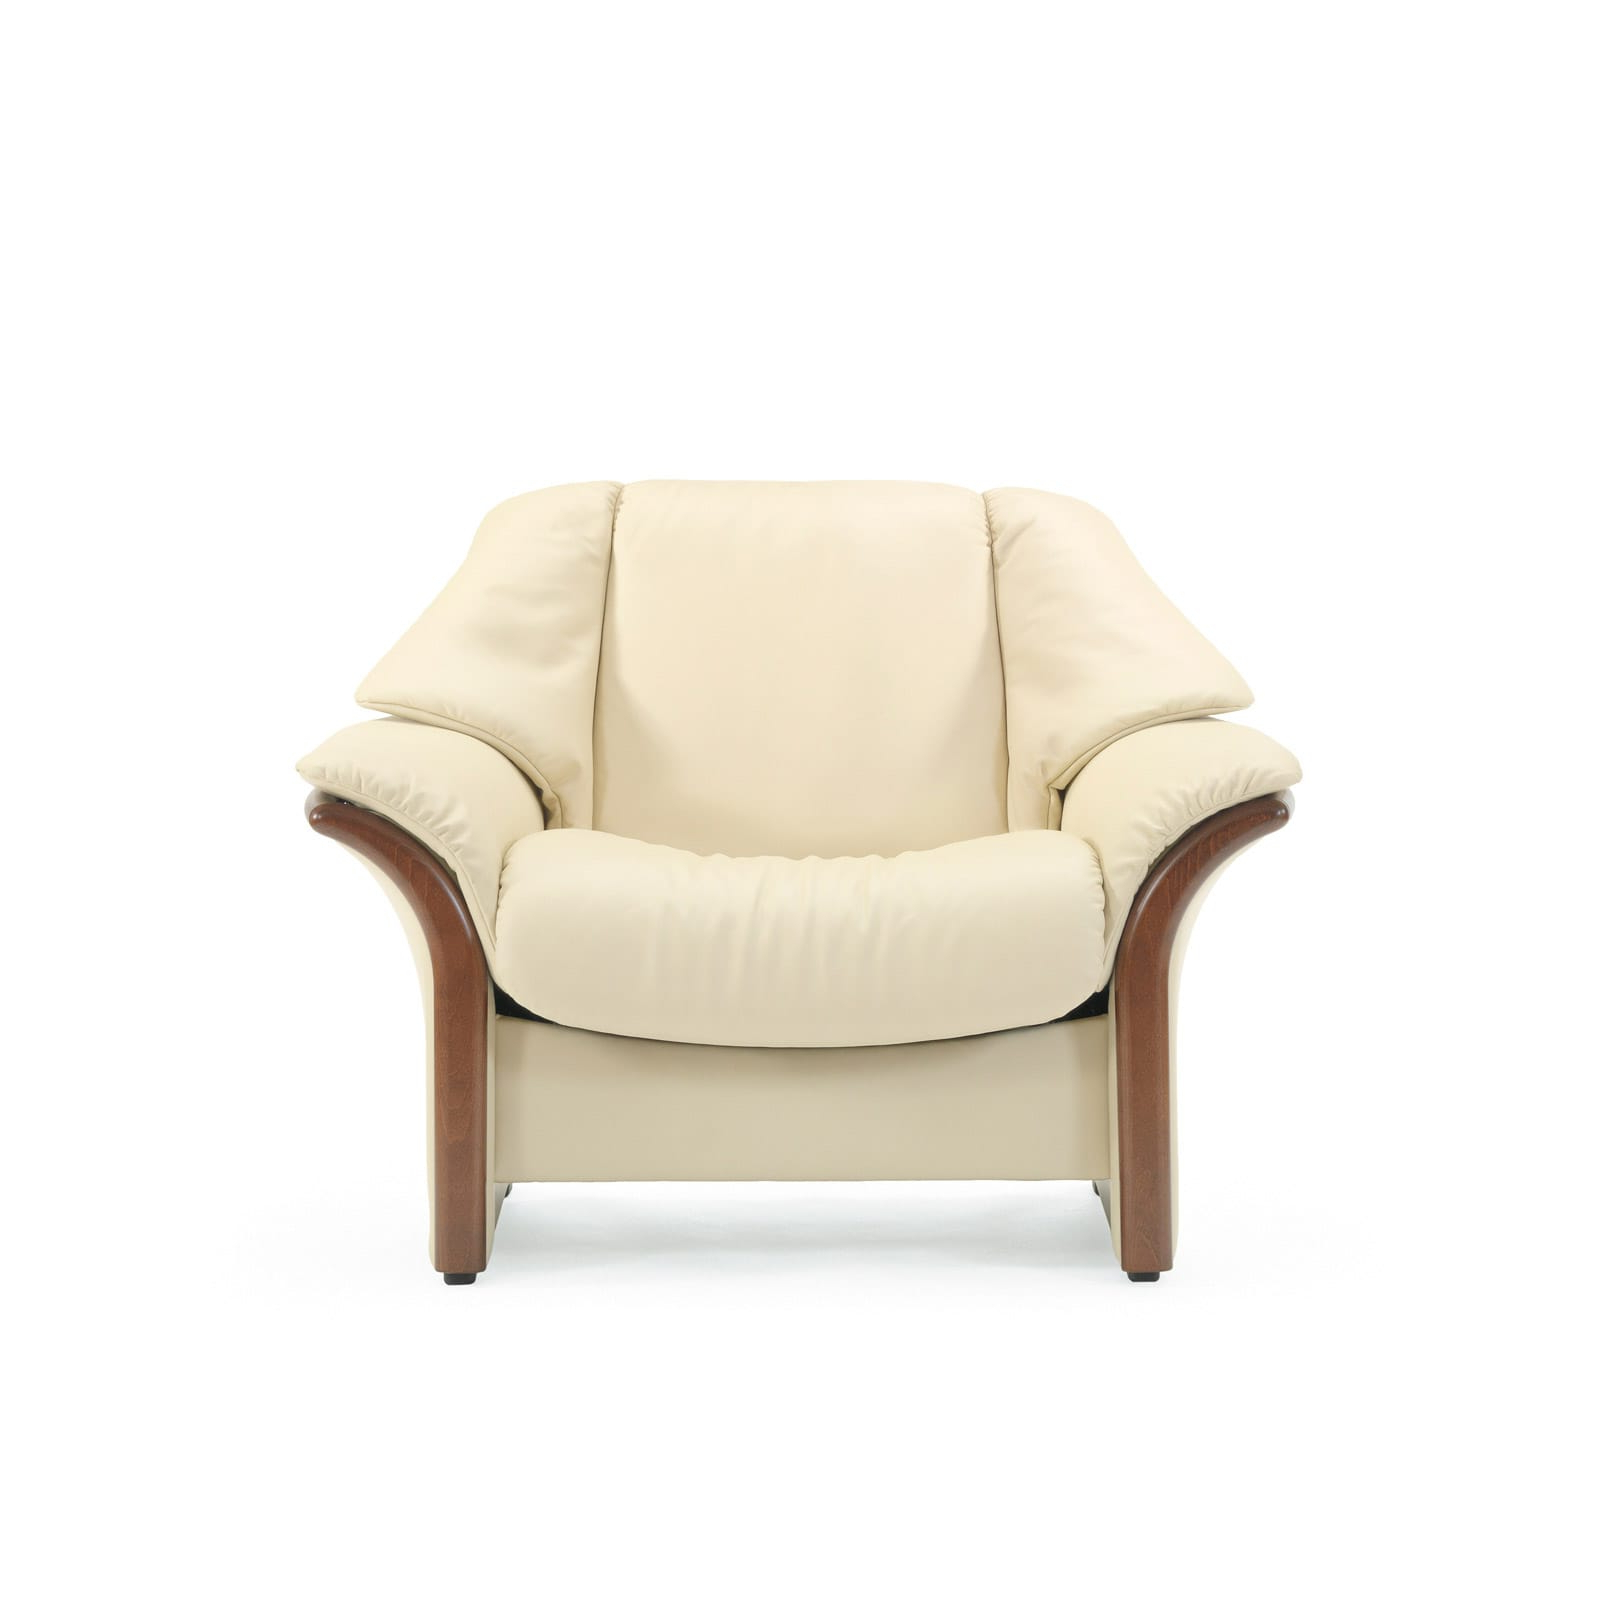 Stressless Sessel Eldorado (M) Niedrig Leder Paloma Vanilla Pertaining To 2019 Eldora Patio Sectionals With Cushions (View 23 of 25)